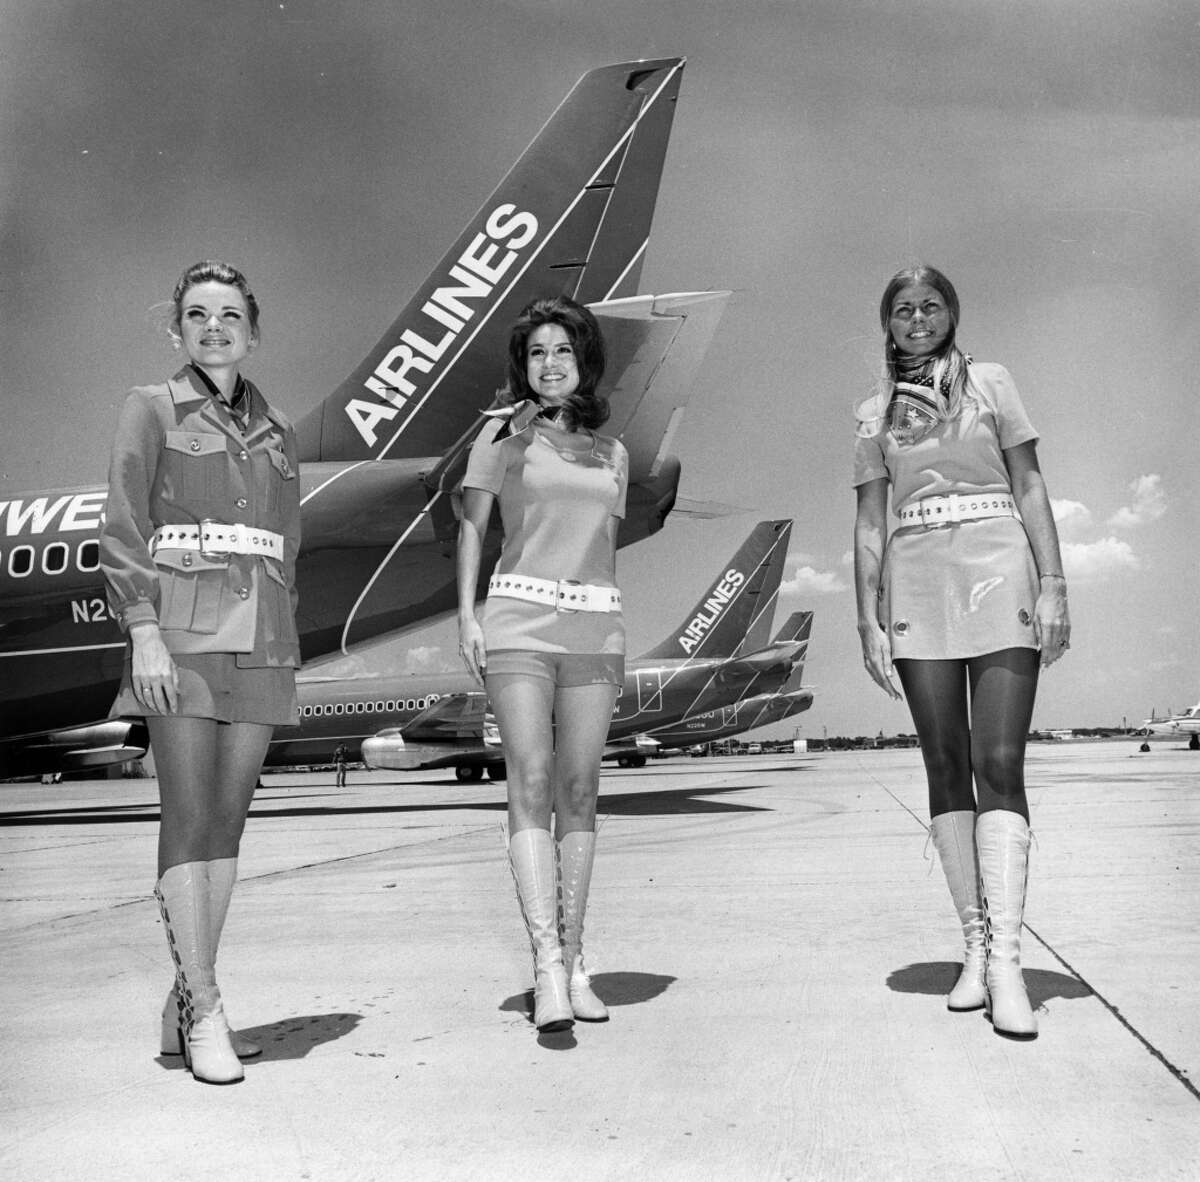 Flight attendants for Southwest Airlines are shown in this 1968 file photo.The low-cost carrier that started when its founders drew a triangle connecting Dallas, Houston and San Antonio on a cocktail napkin and has evolved into one of the leading domestic carriers.